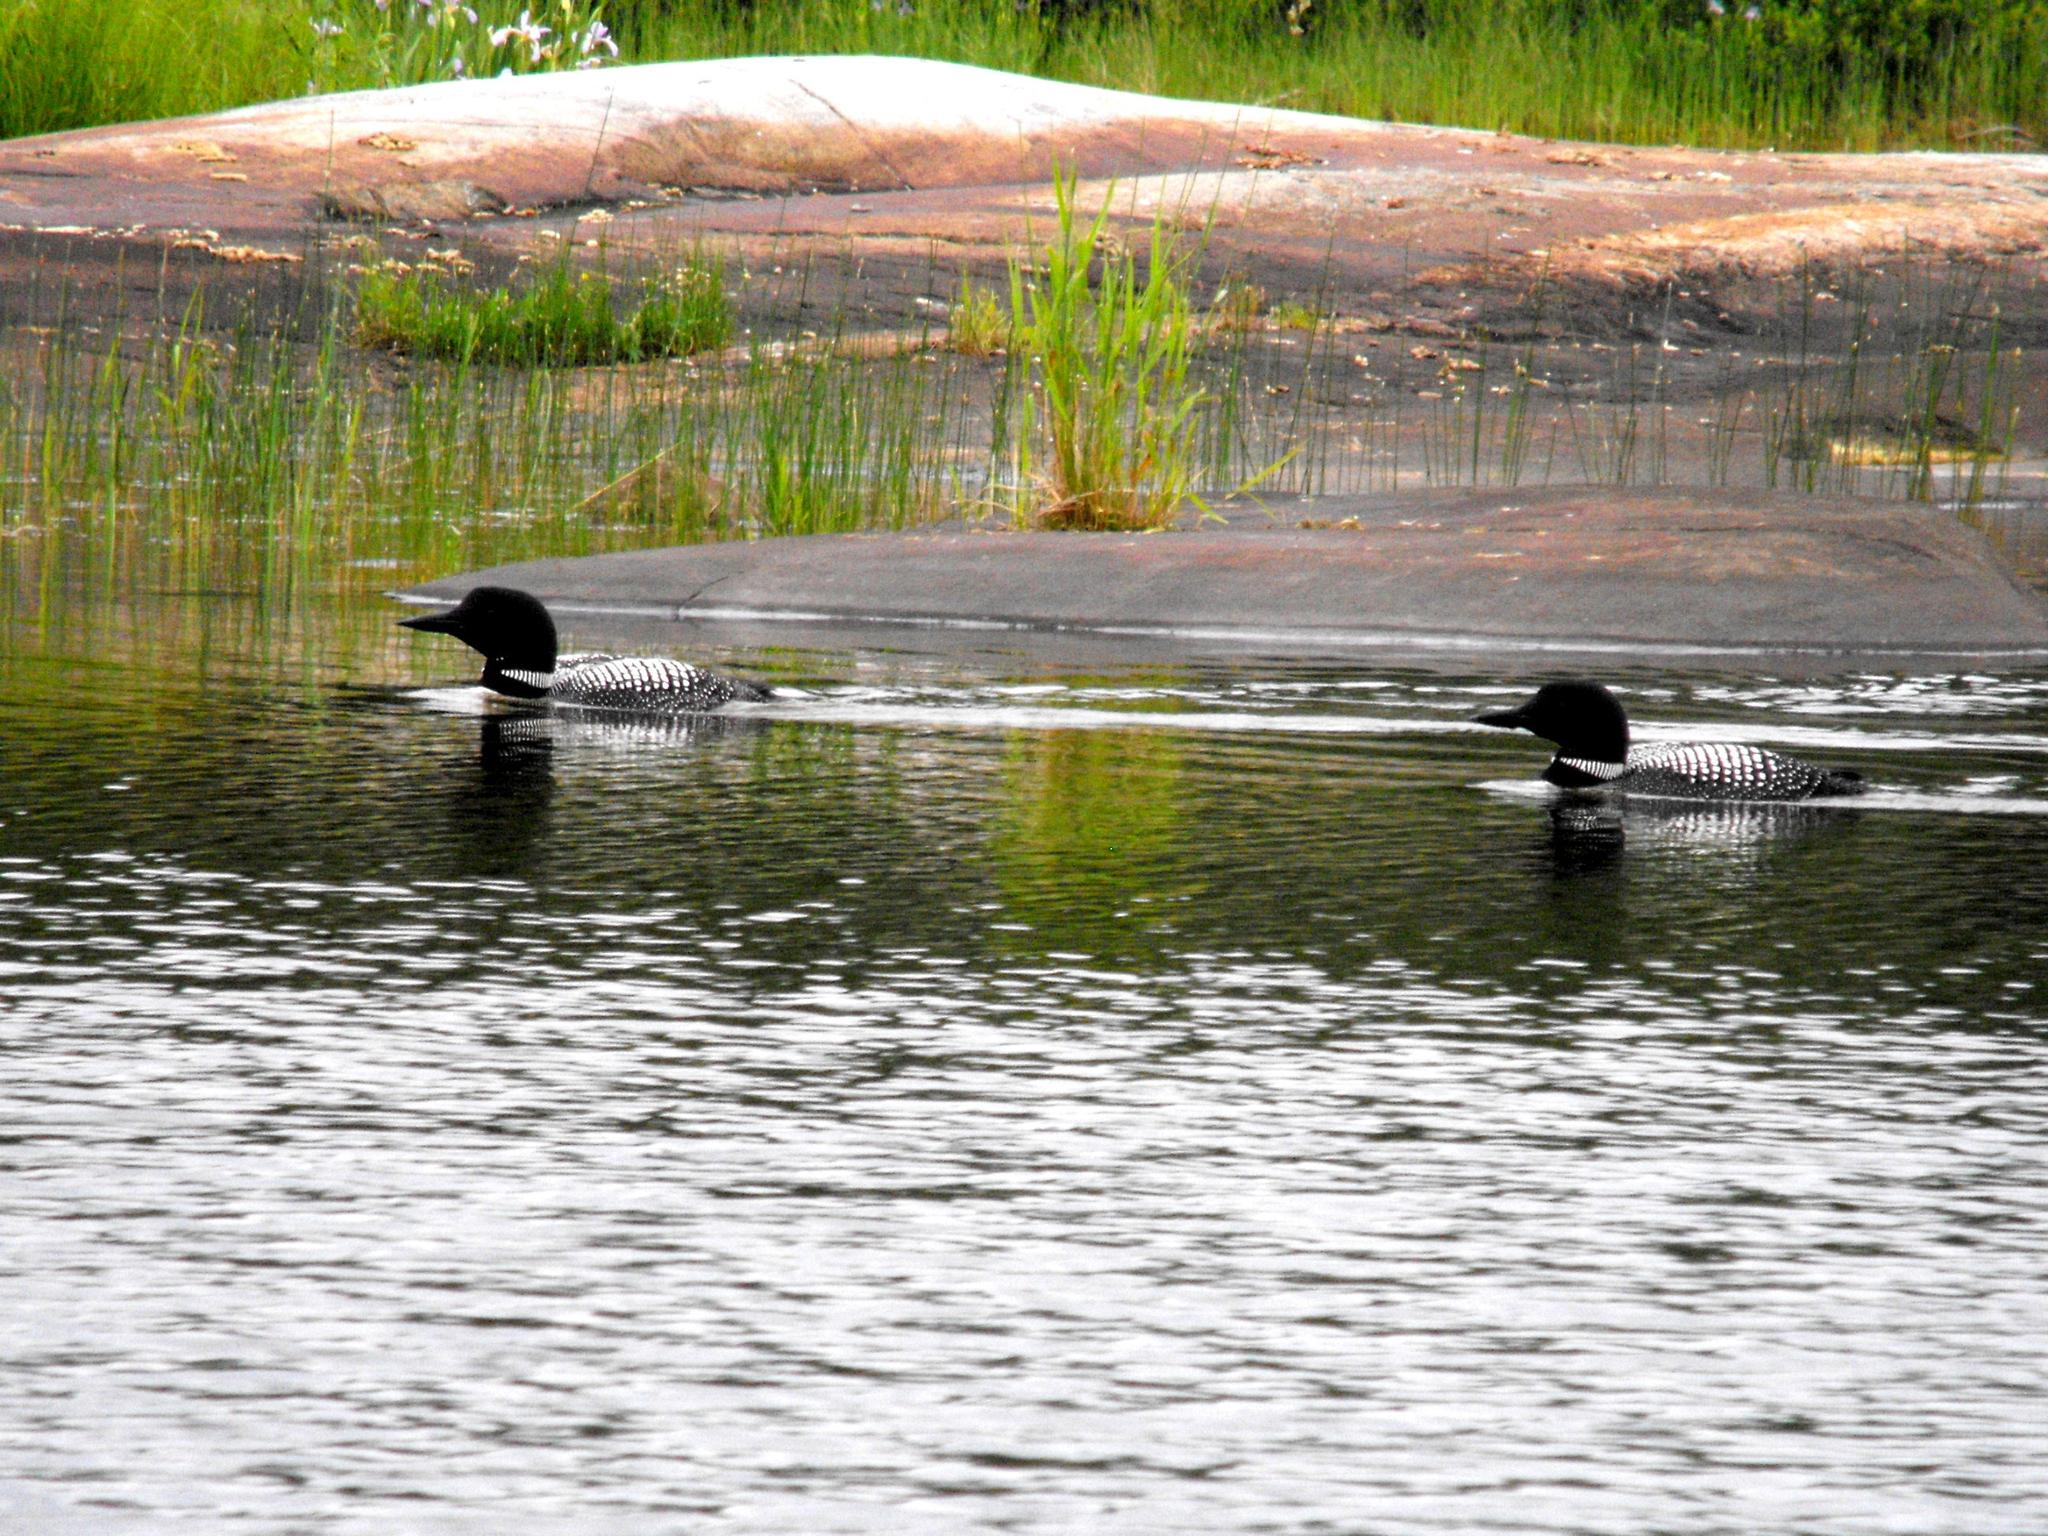 Loons on the Georgian Bay by cheryl.peters.9615